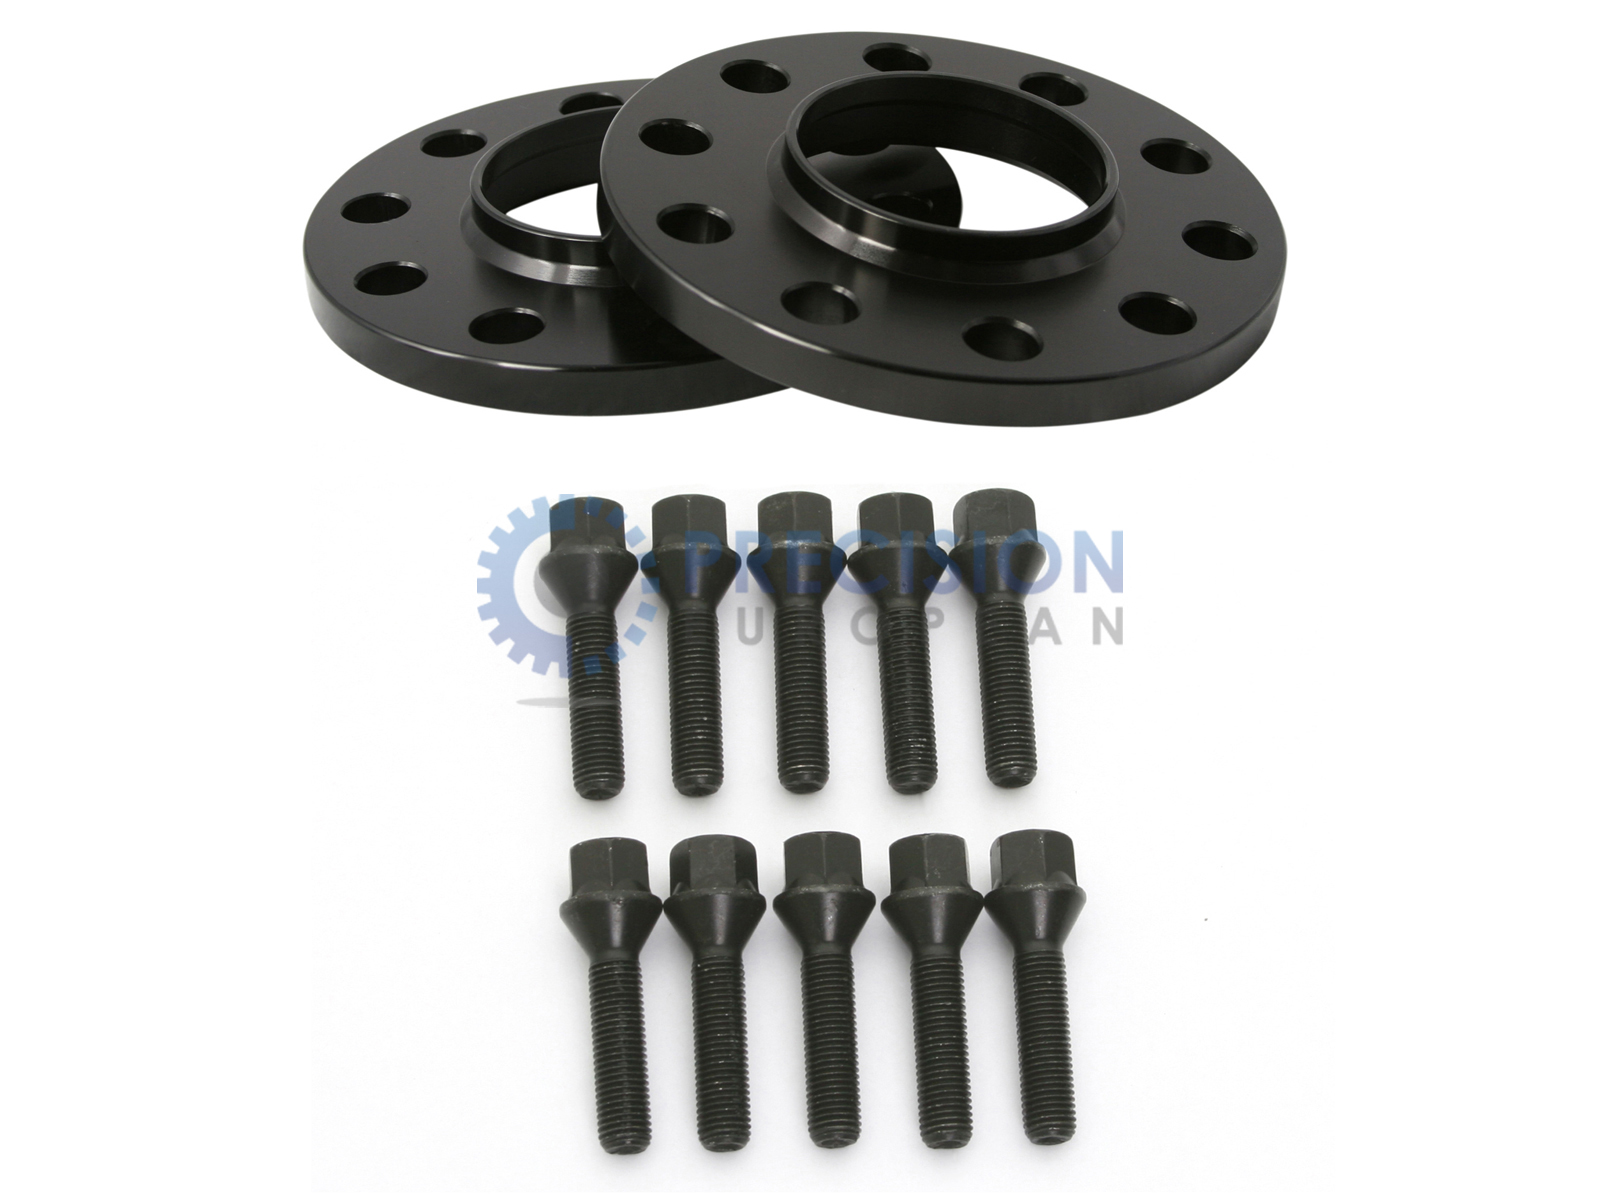 15mm BMW E39 5x120 Wheel Spacers Hubcentric 74 1 74